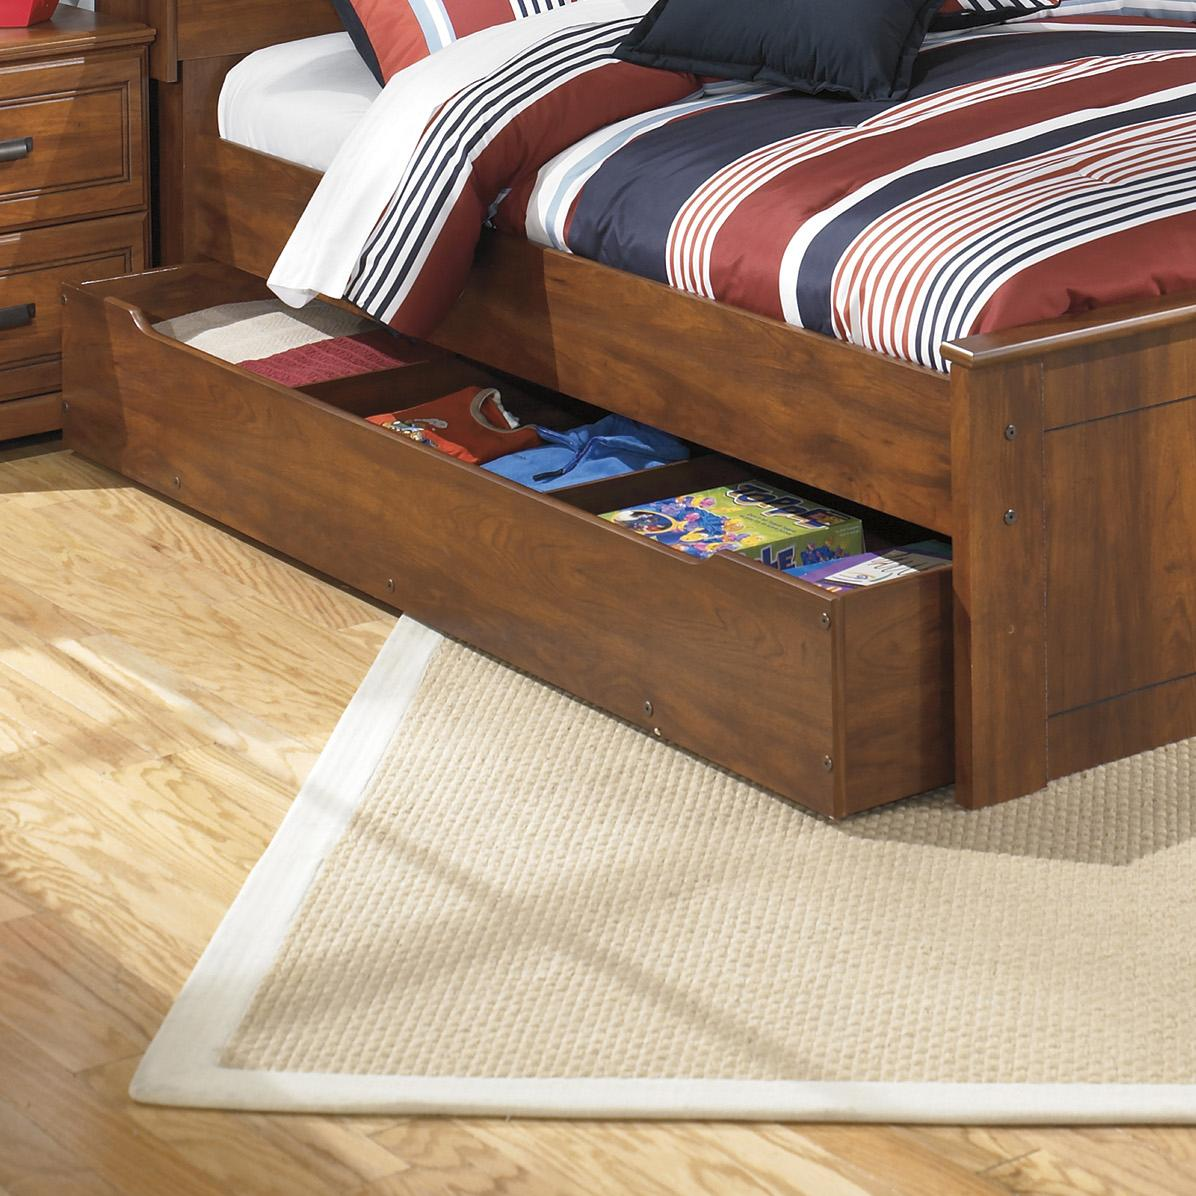 Barchan Trundle Under Bed Storage by Signature Design by Ashley at Rife's Home Furniture